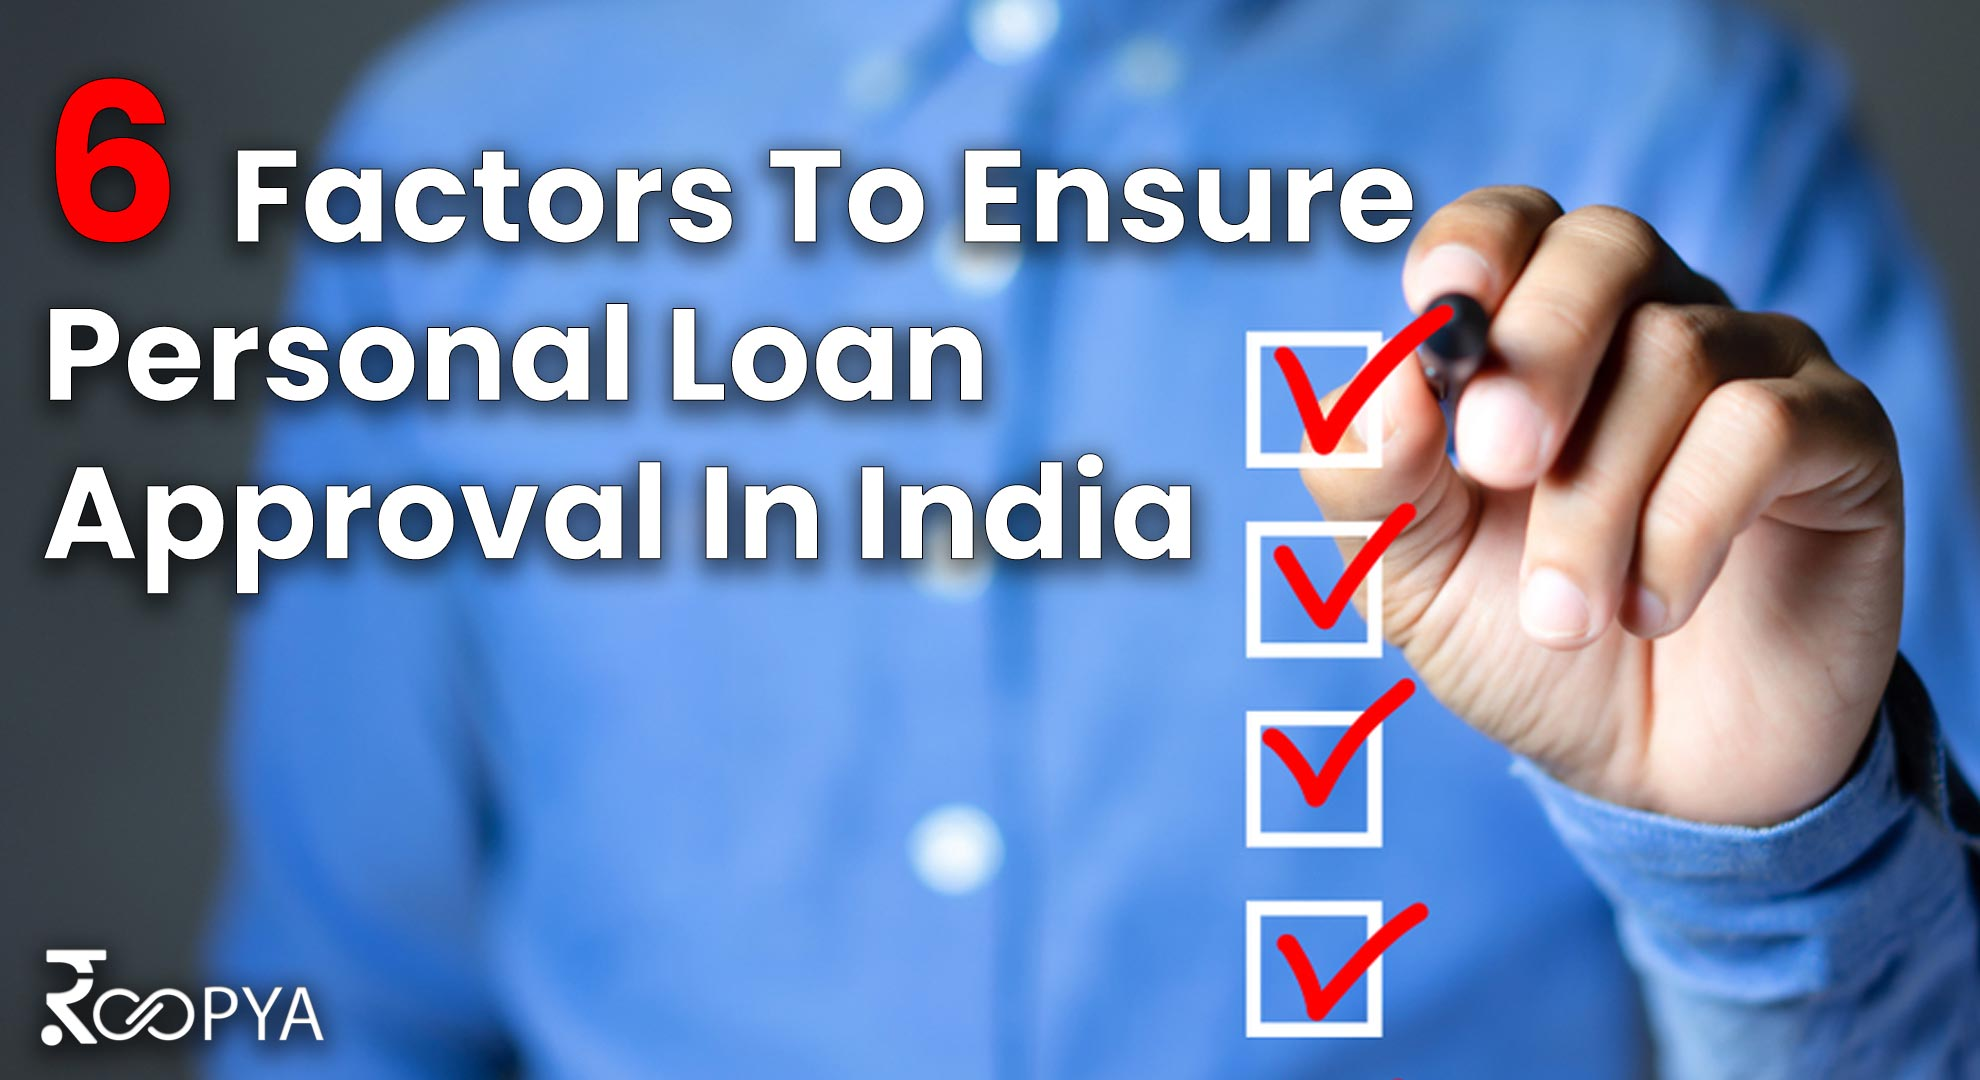 personal loan approval in India